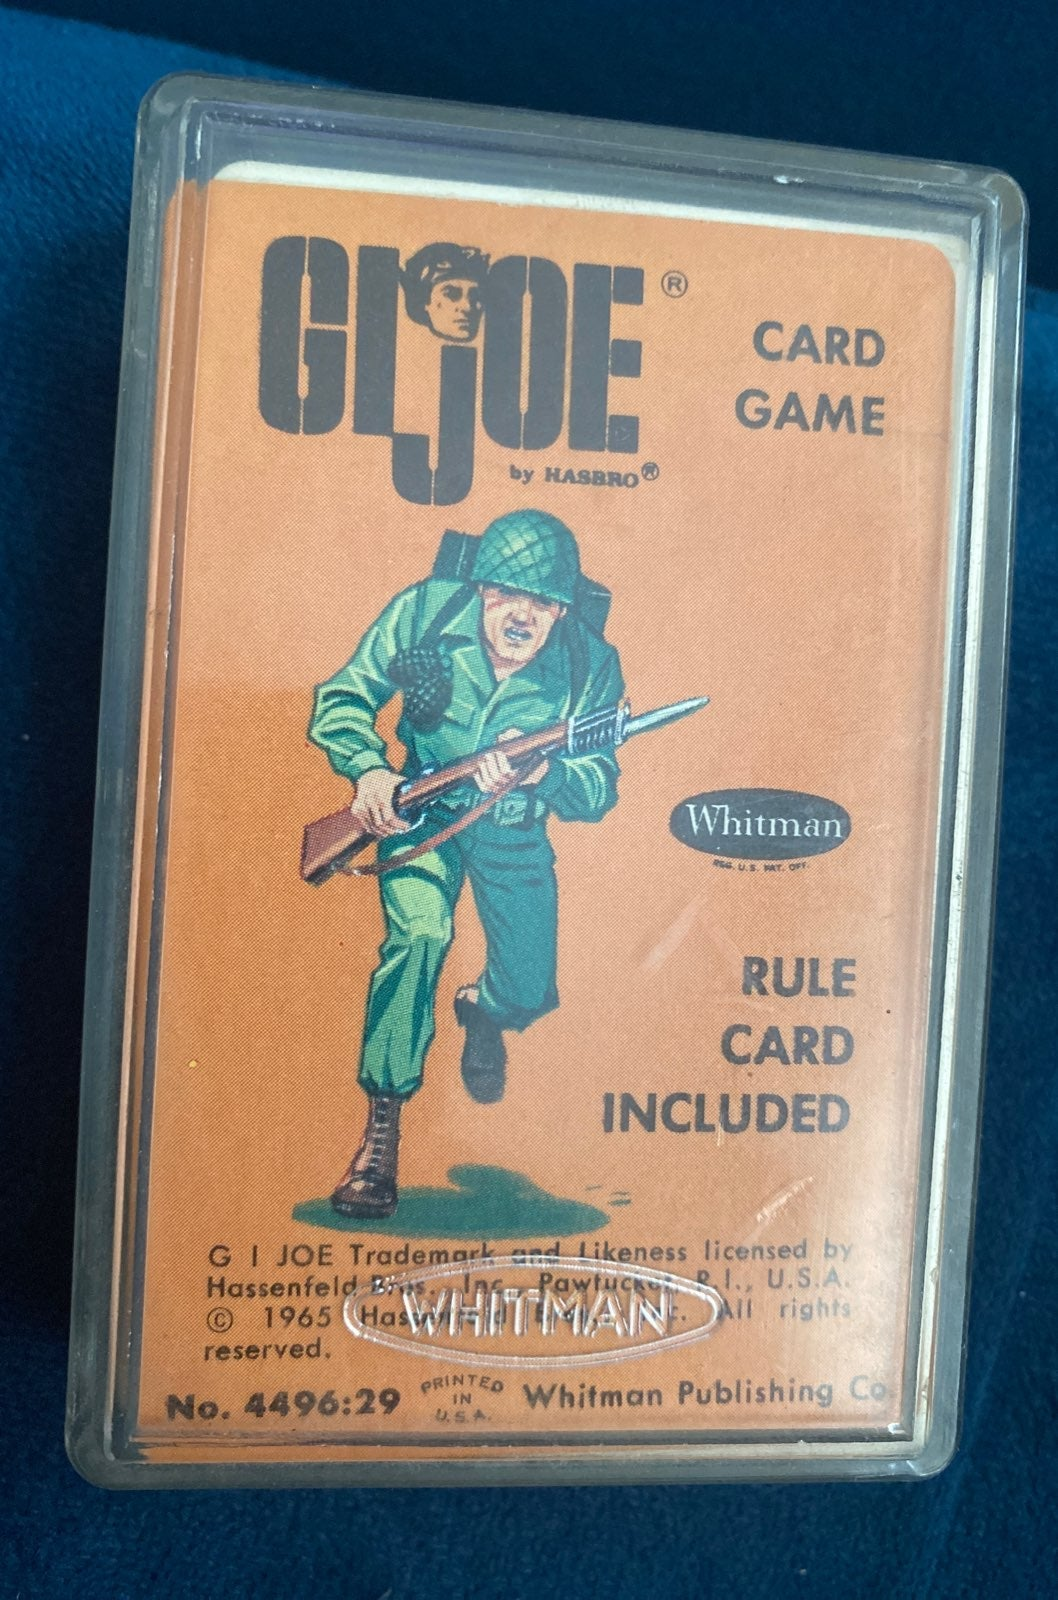 VINTAGE 1965 GIJOE G I JOE Card Game